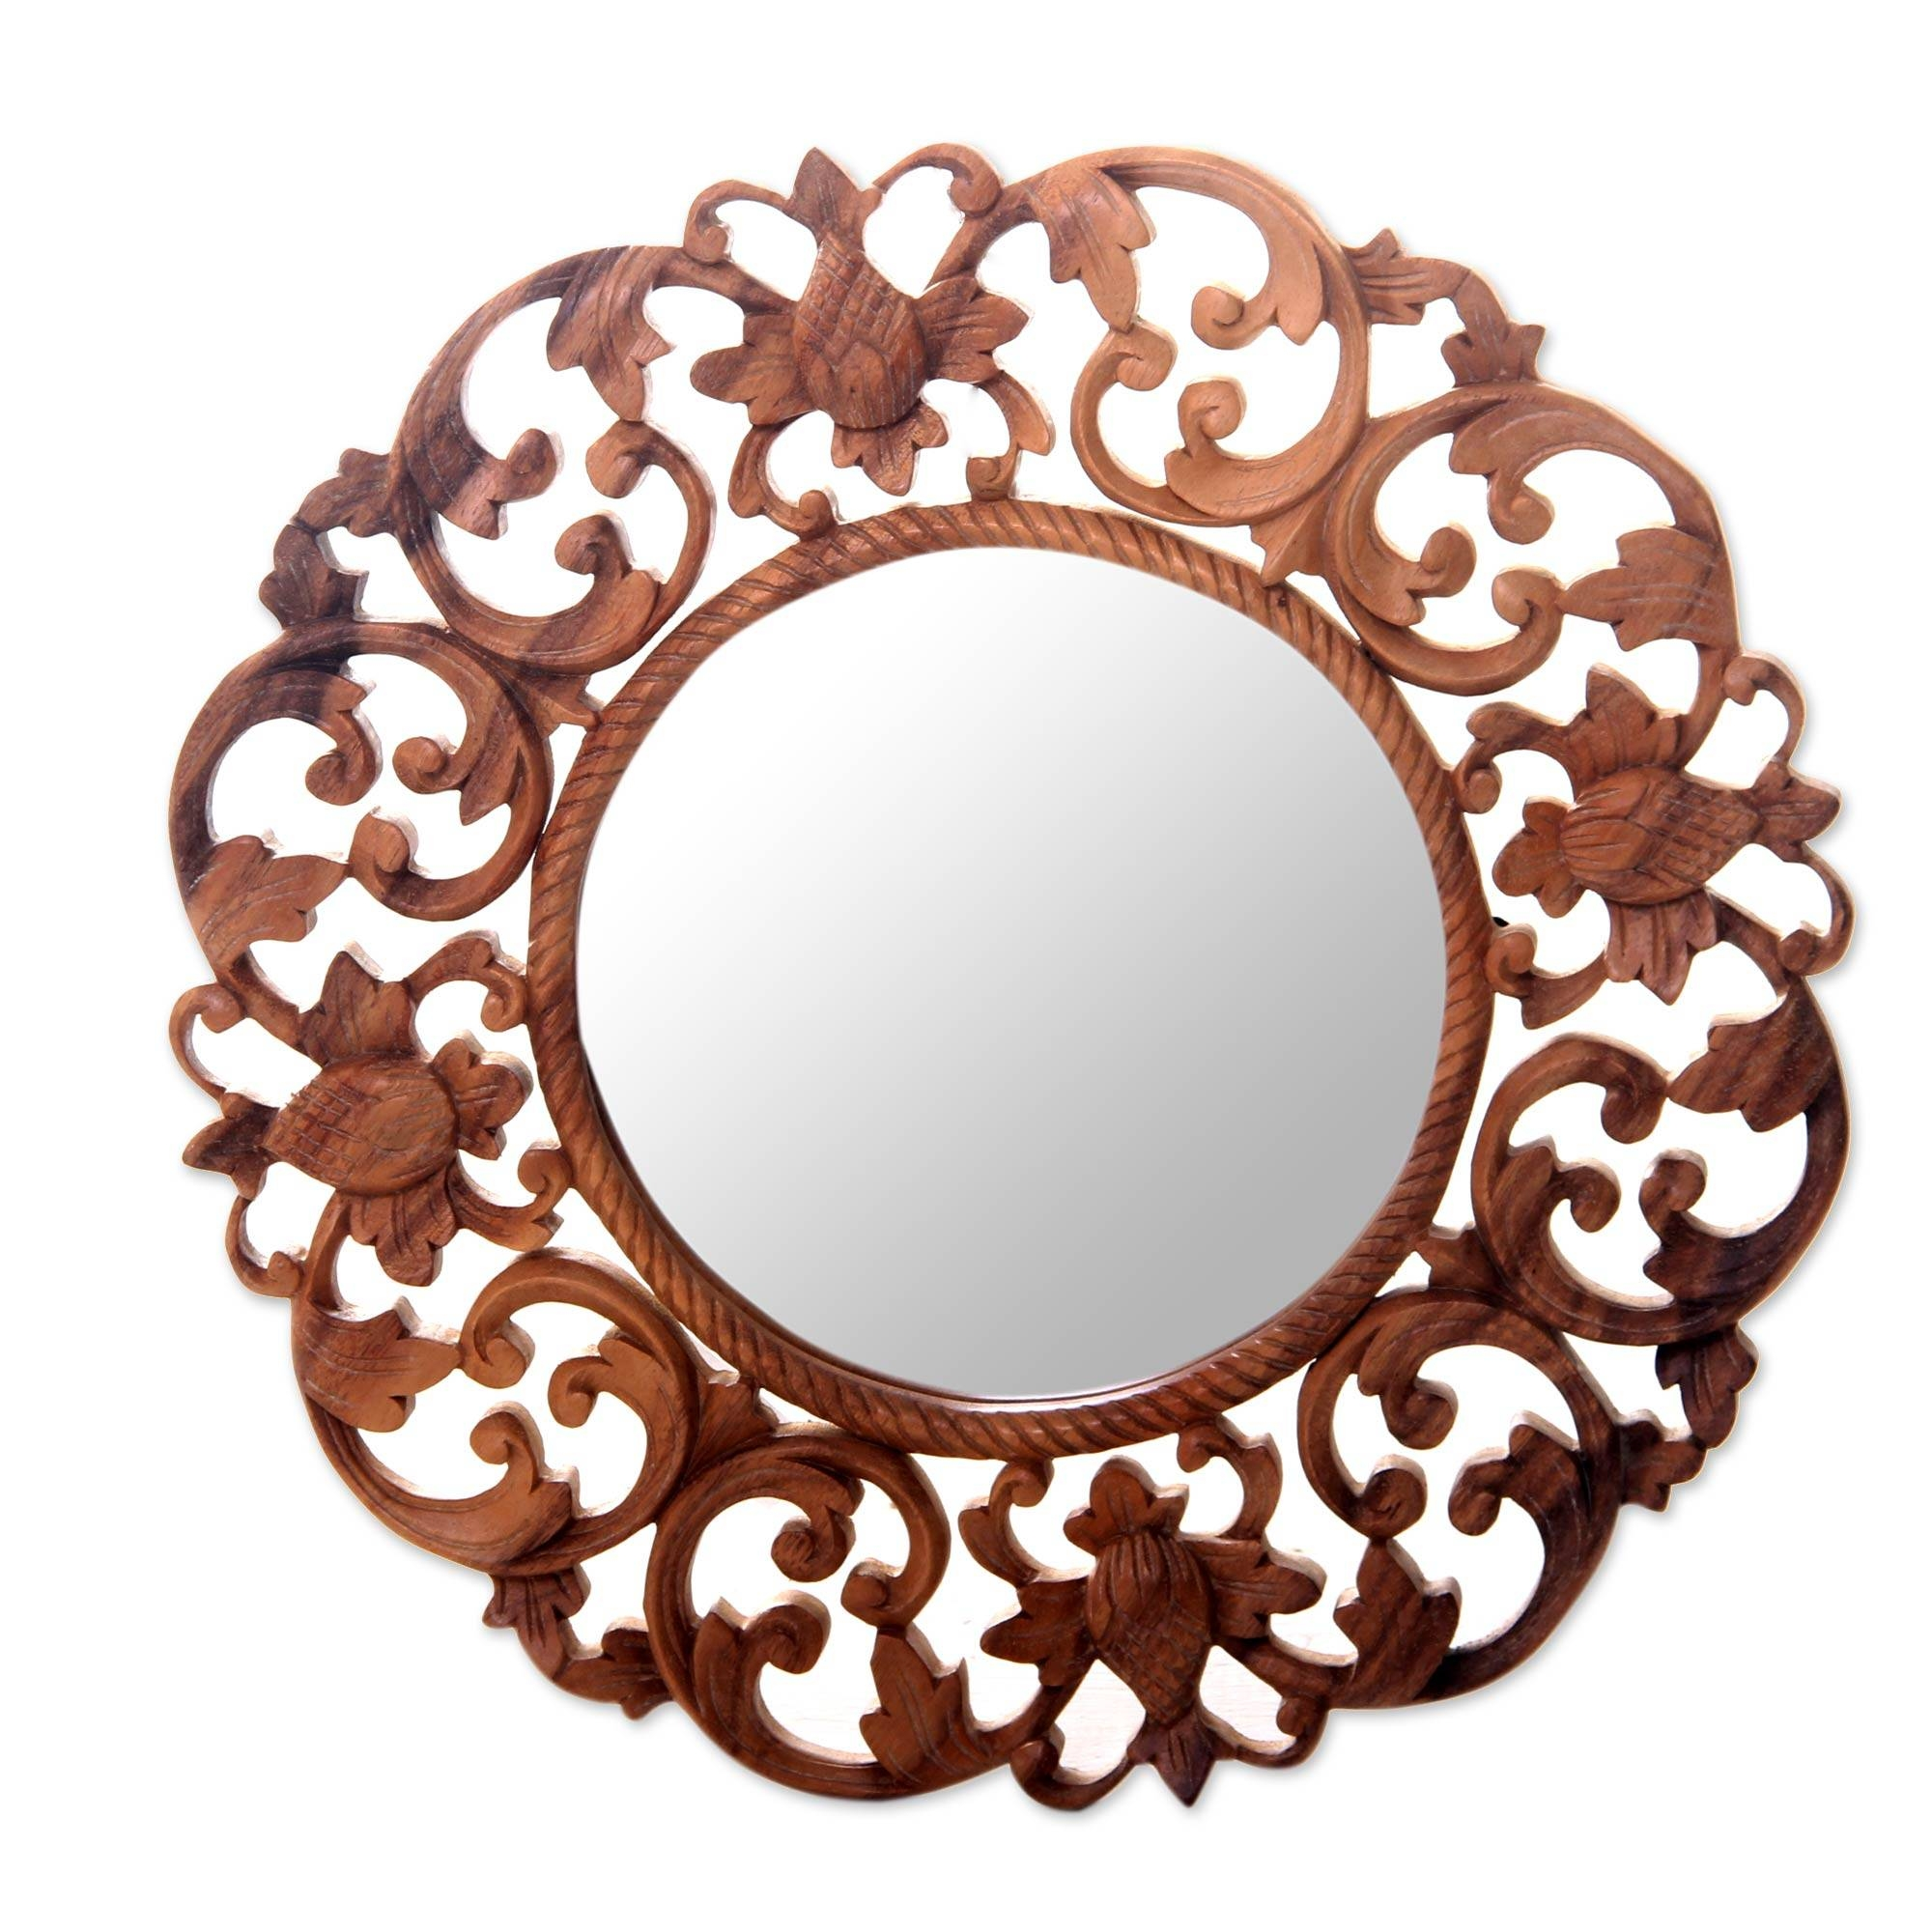 Mirrors - Decorative Global & Antique-Style Wall Mirrors - Novica inside Antique Style Wall Mirrors (Image 20 of 25)